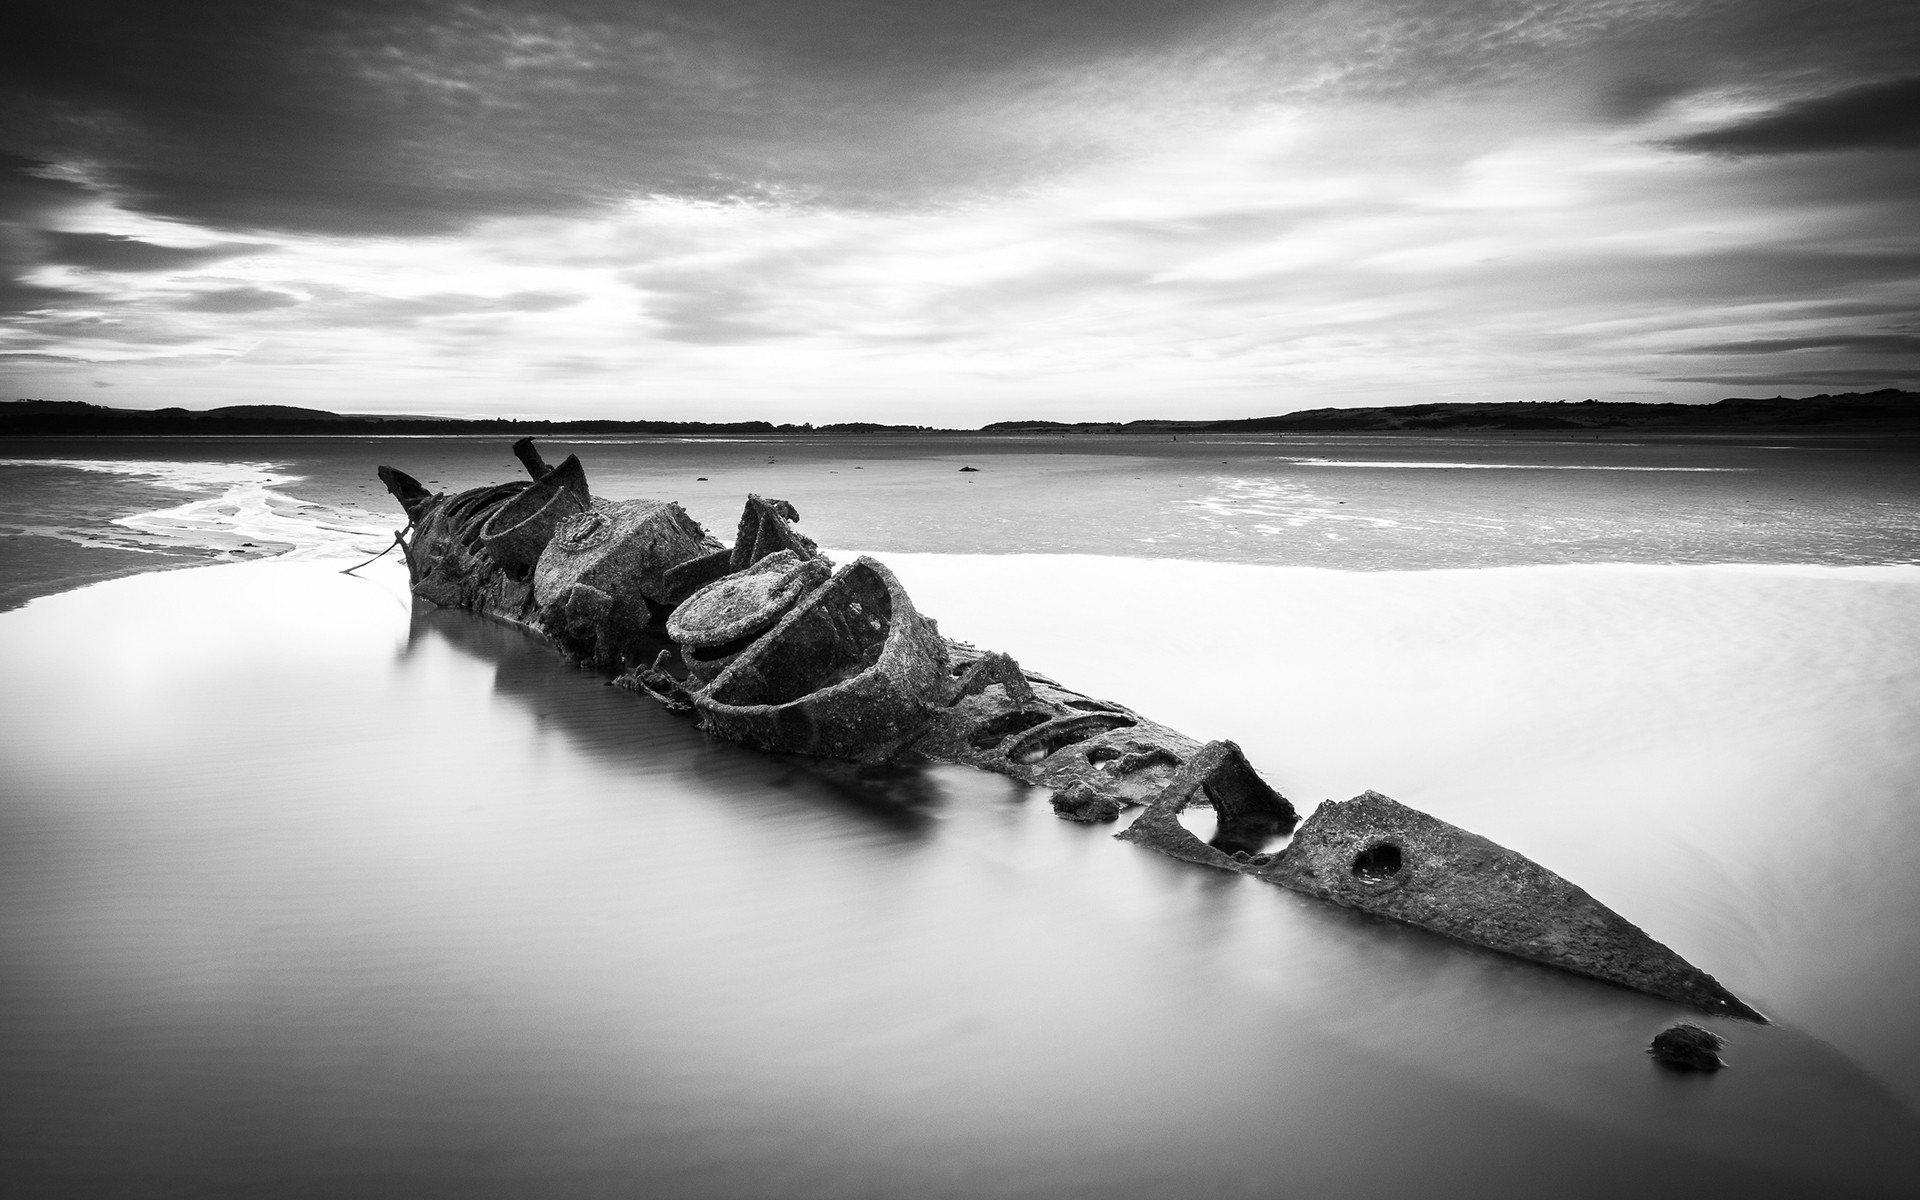 Res: 1920x1200, nature, Landscape, Water, Sea, Clouds, Ship, Shipwreck, Rust, Drown,  Monochrome, Long Exposure Wallpapers HD / Desktop and Mobile Backgrounds